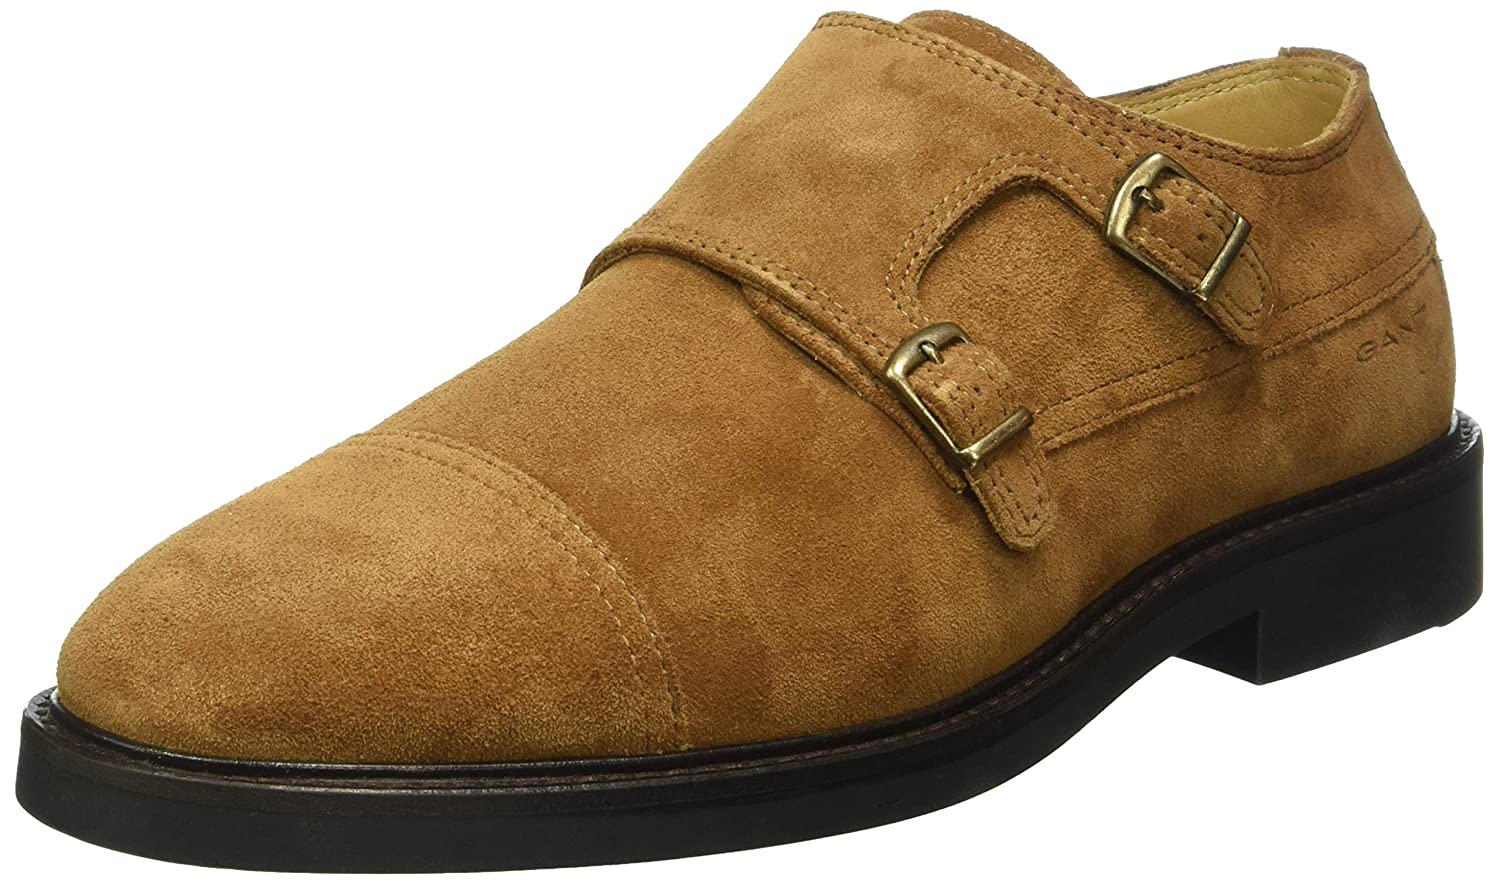 GANT Spencer, Mocasines para Hombre, Marrón (Cognac G45), 42 EU: Amazon.es: Zapatos y complementos